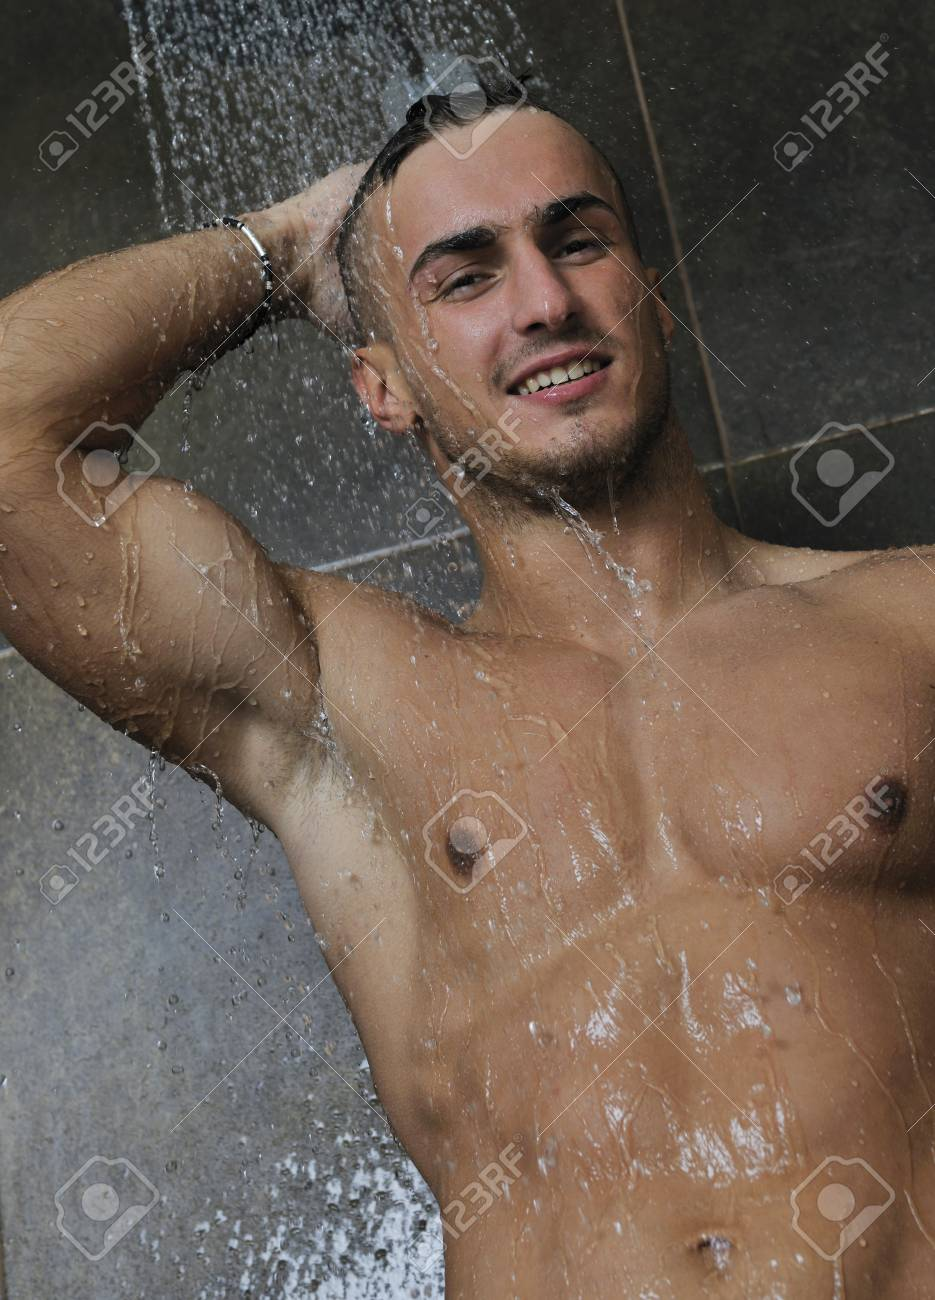 young good looking and attractive man with muscular body wet taking showe in bath with black tiles in background Stock Photo - 7286135